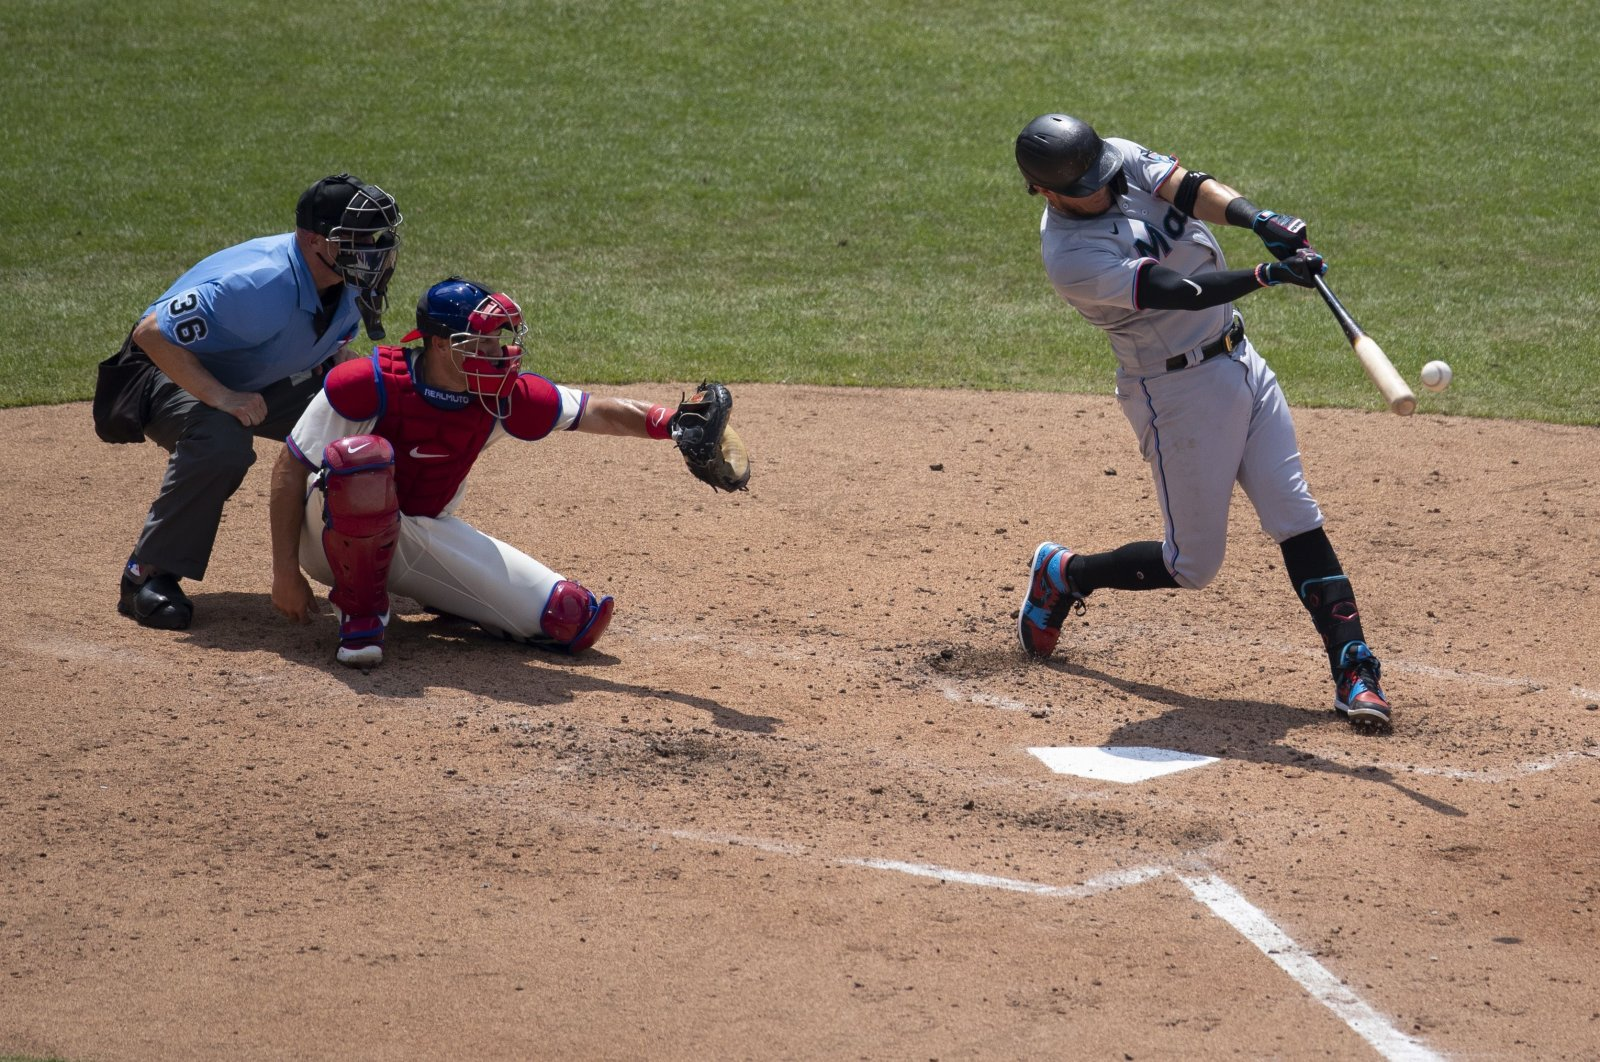 Miguel Rojas of the Miami Marlins hist an RBI triple in the top of the fourth inning against the Philadelphia Phillies in Philadelphia, PA, U.S., July 26, 2020. (AFP Photo)